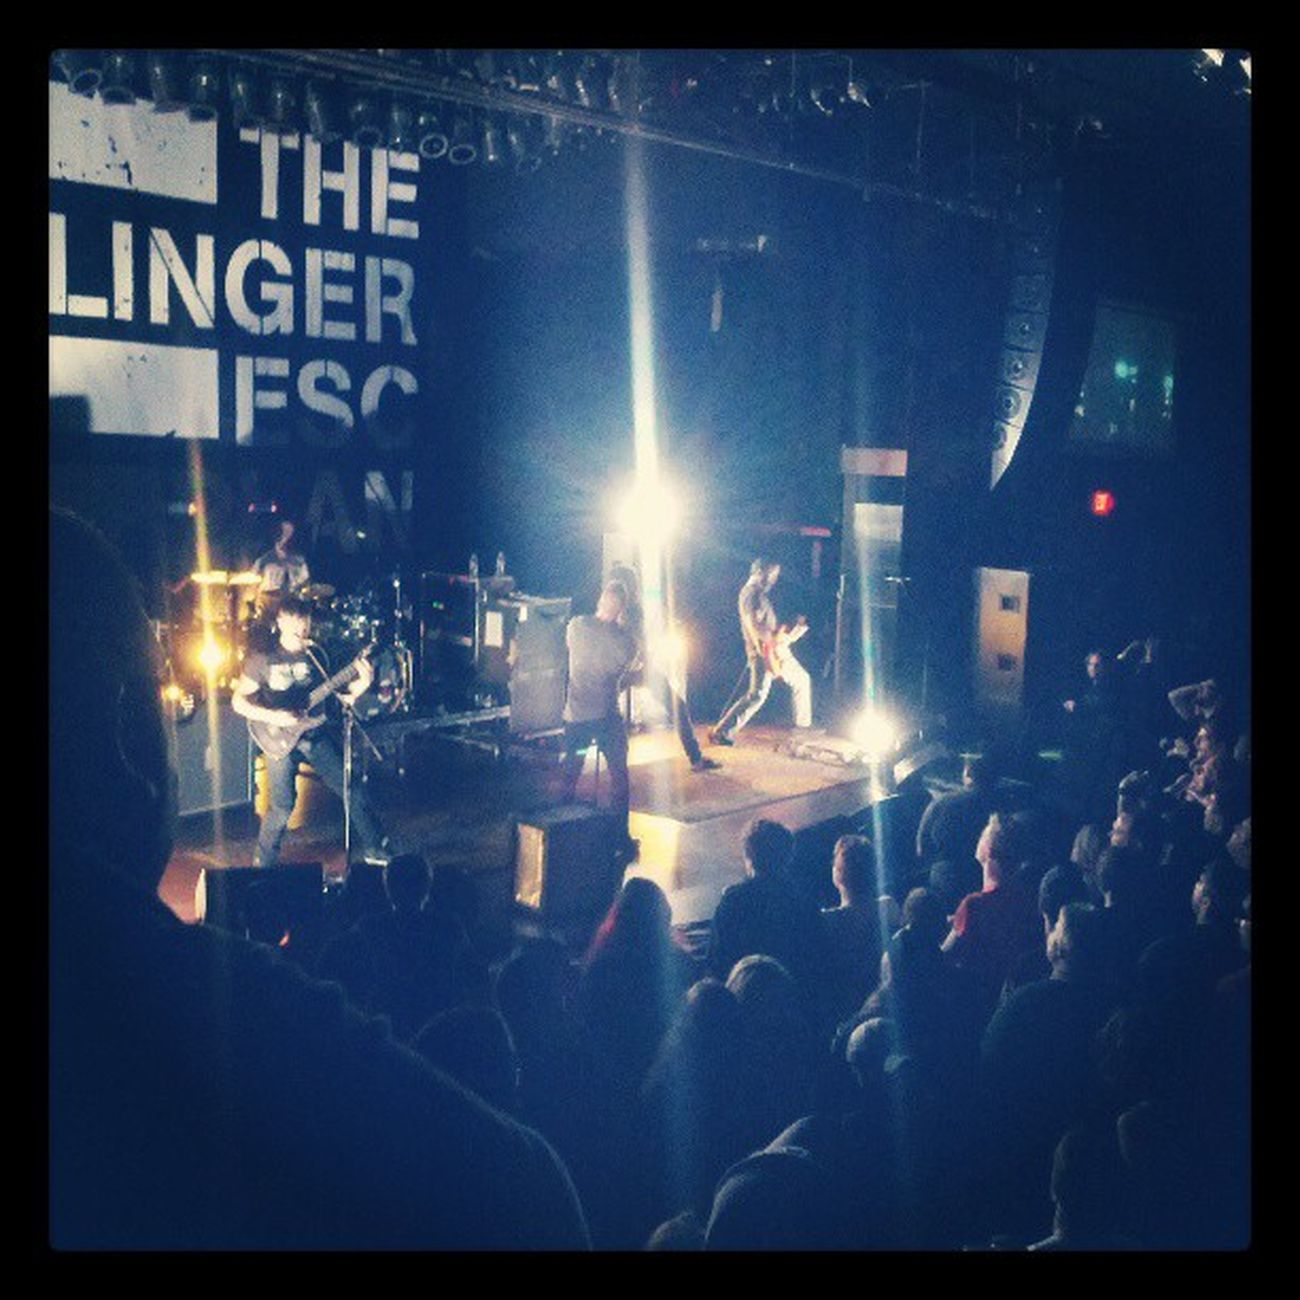 Dillinger escape plan tearing up Buffalo at the @townballroom . Sorry for the small crowd :(